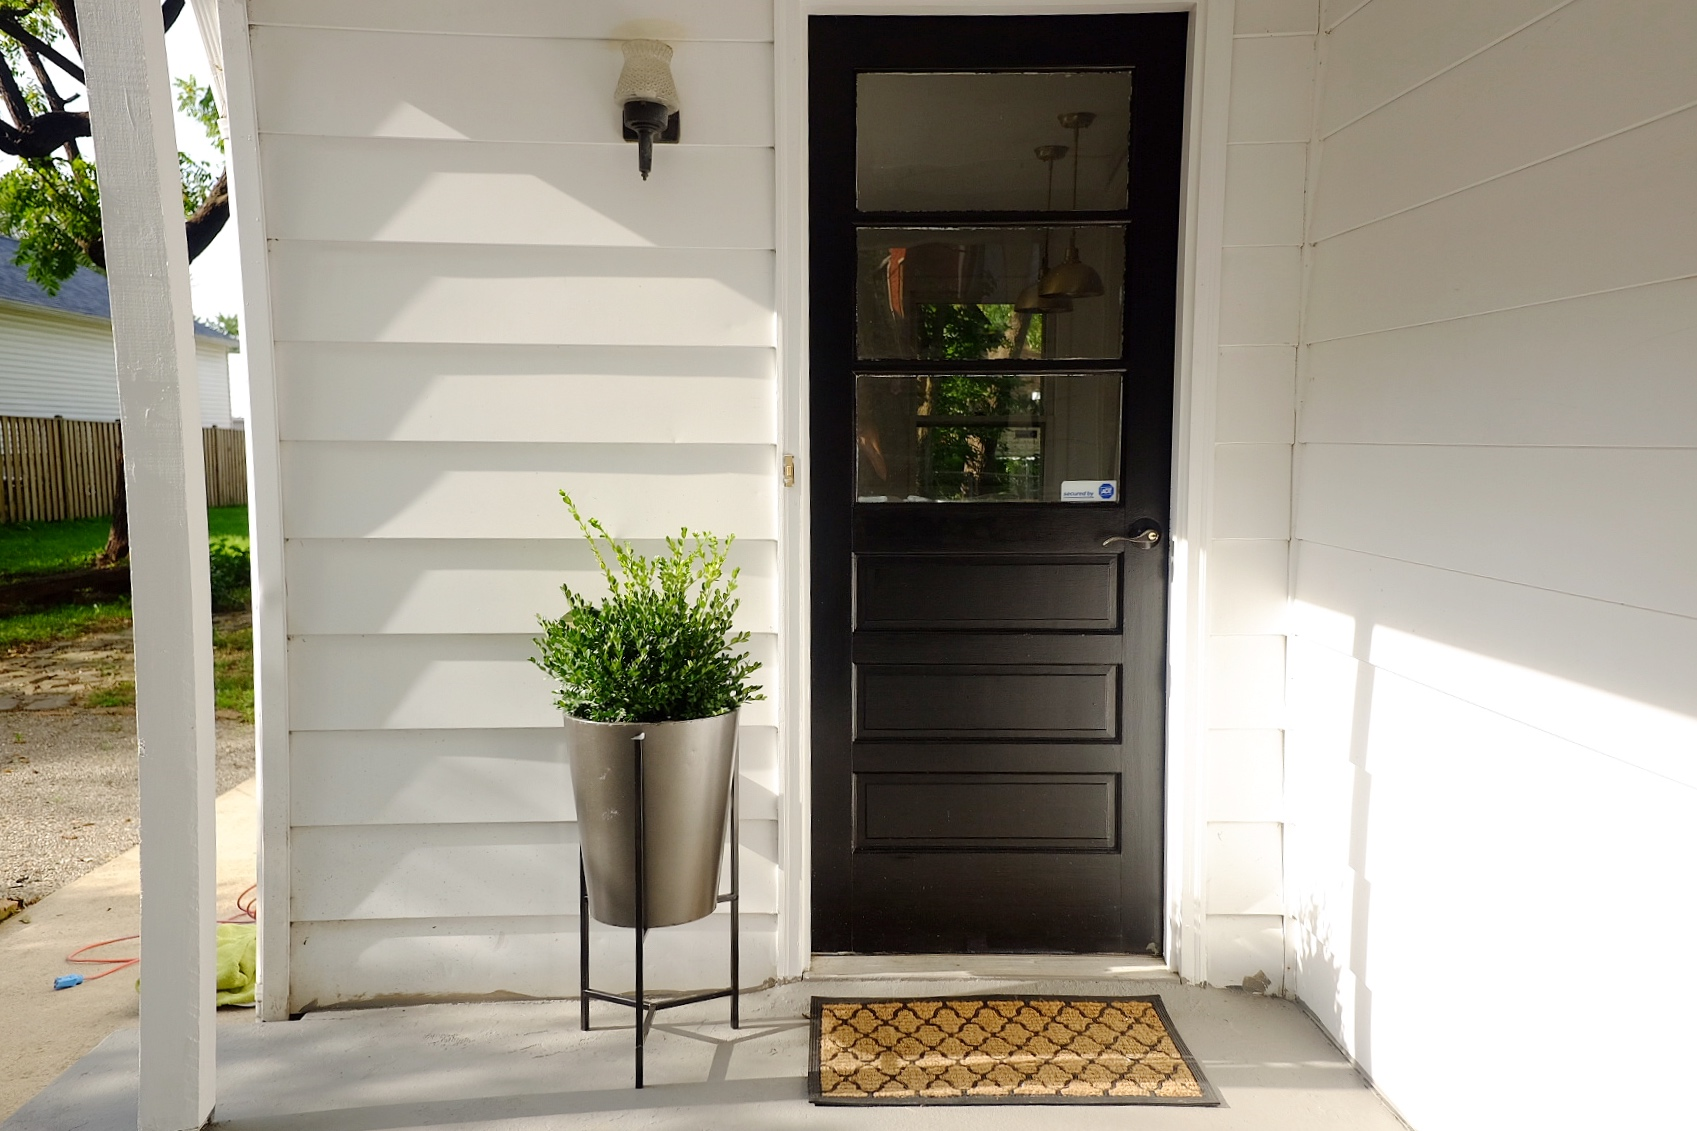 We painted this door on the side porch a classic black color to make it stand out from the white siding.